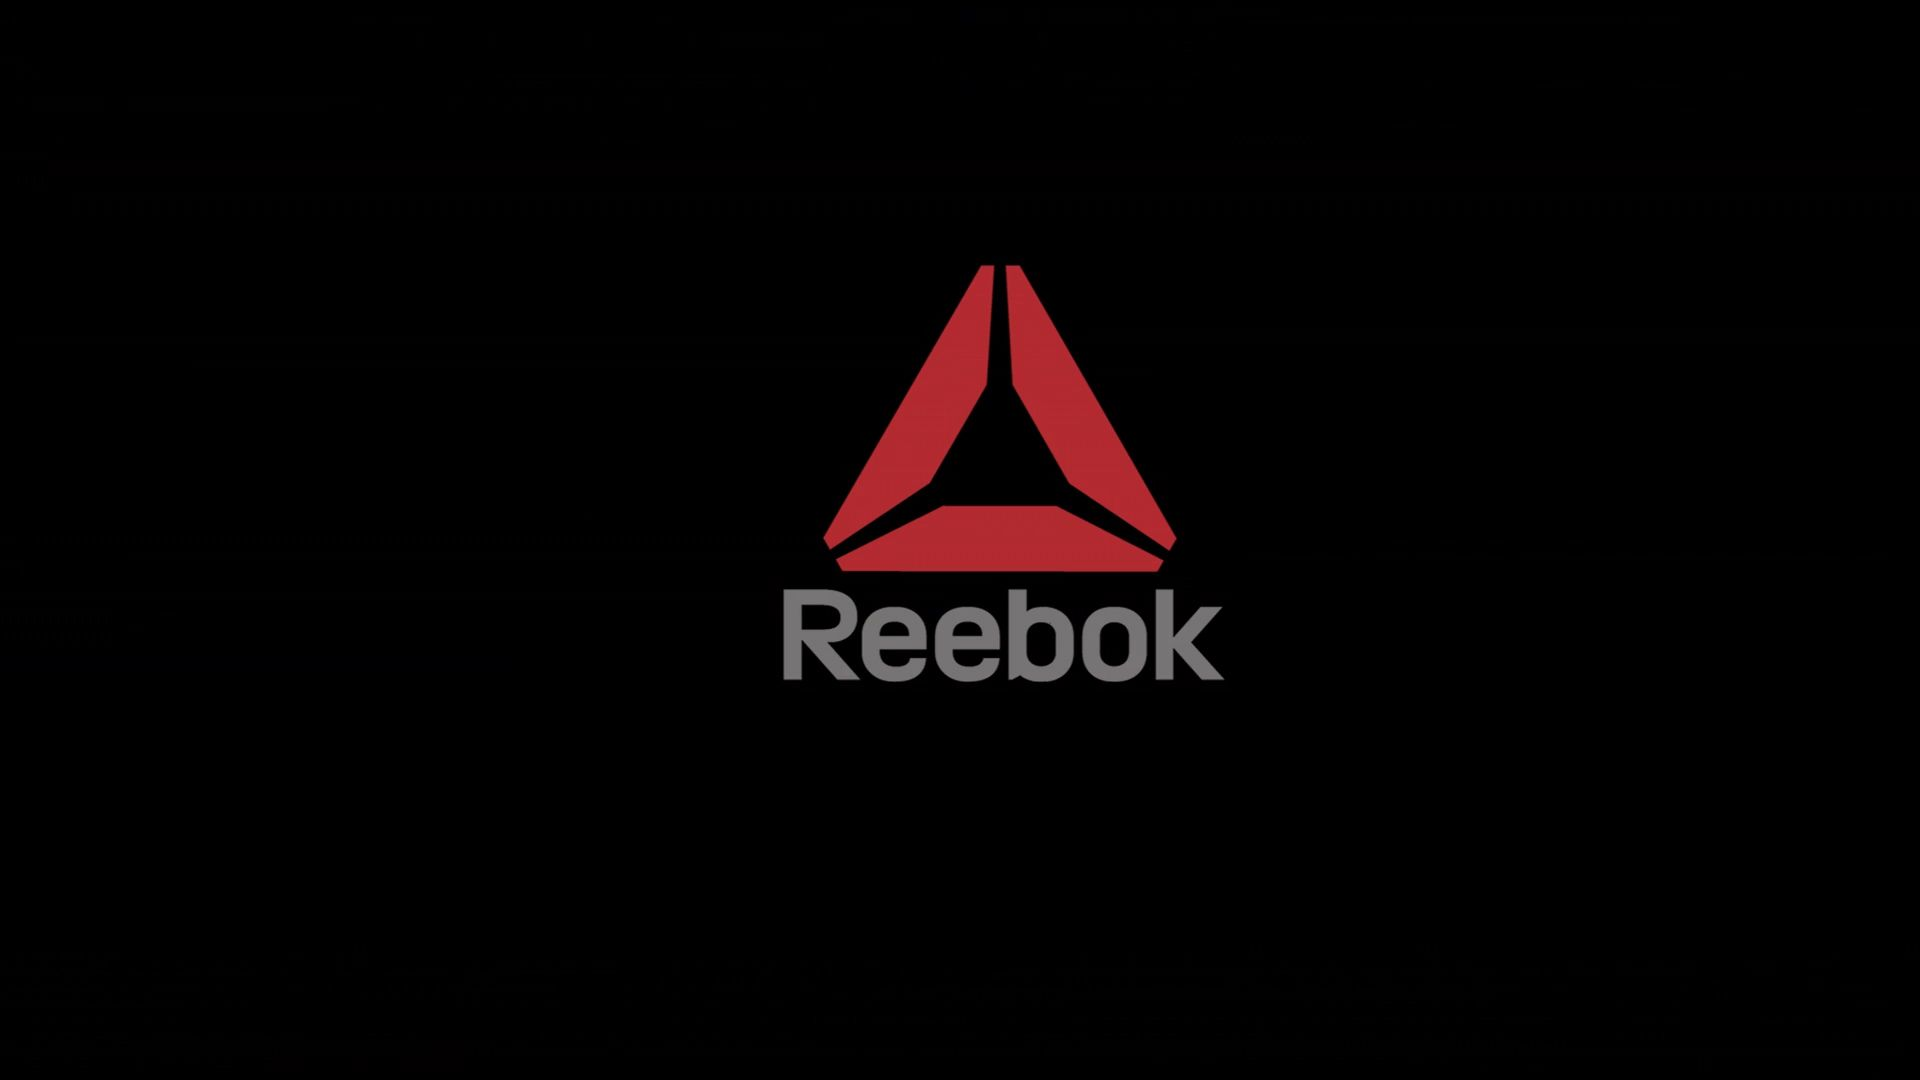 1920x1080 5452073 1920x1080 reebok computer background | reebok ...